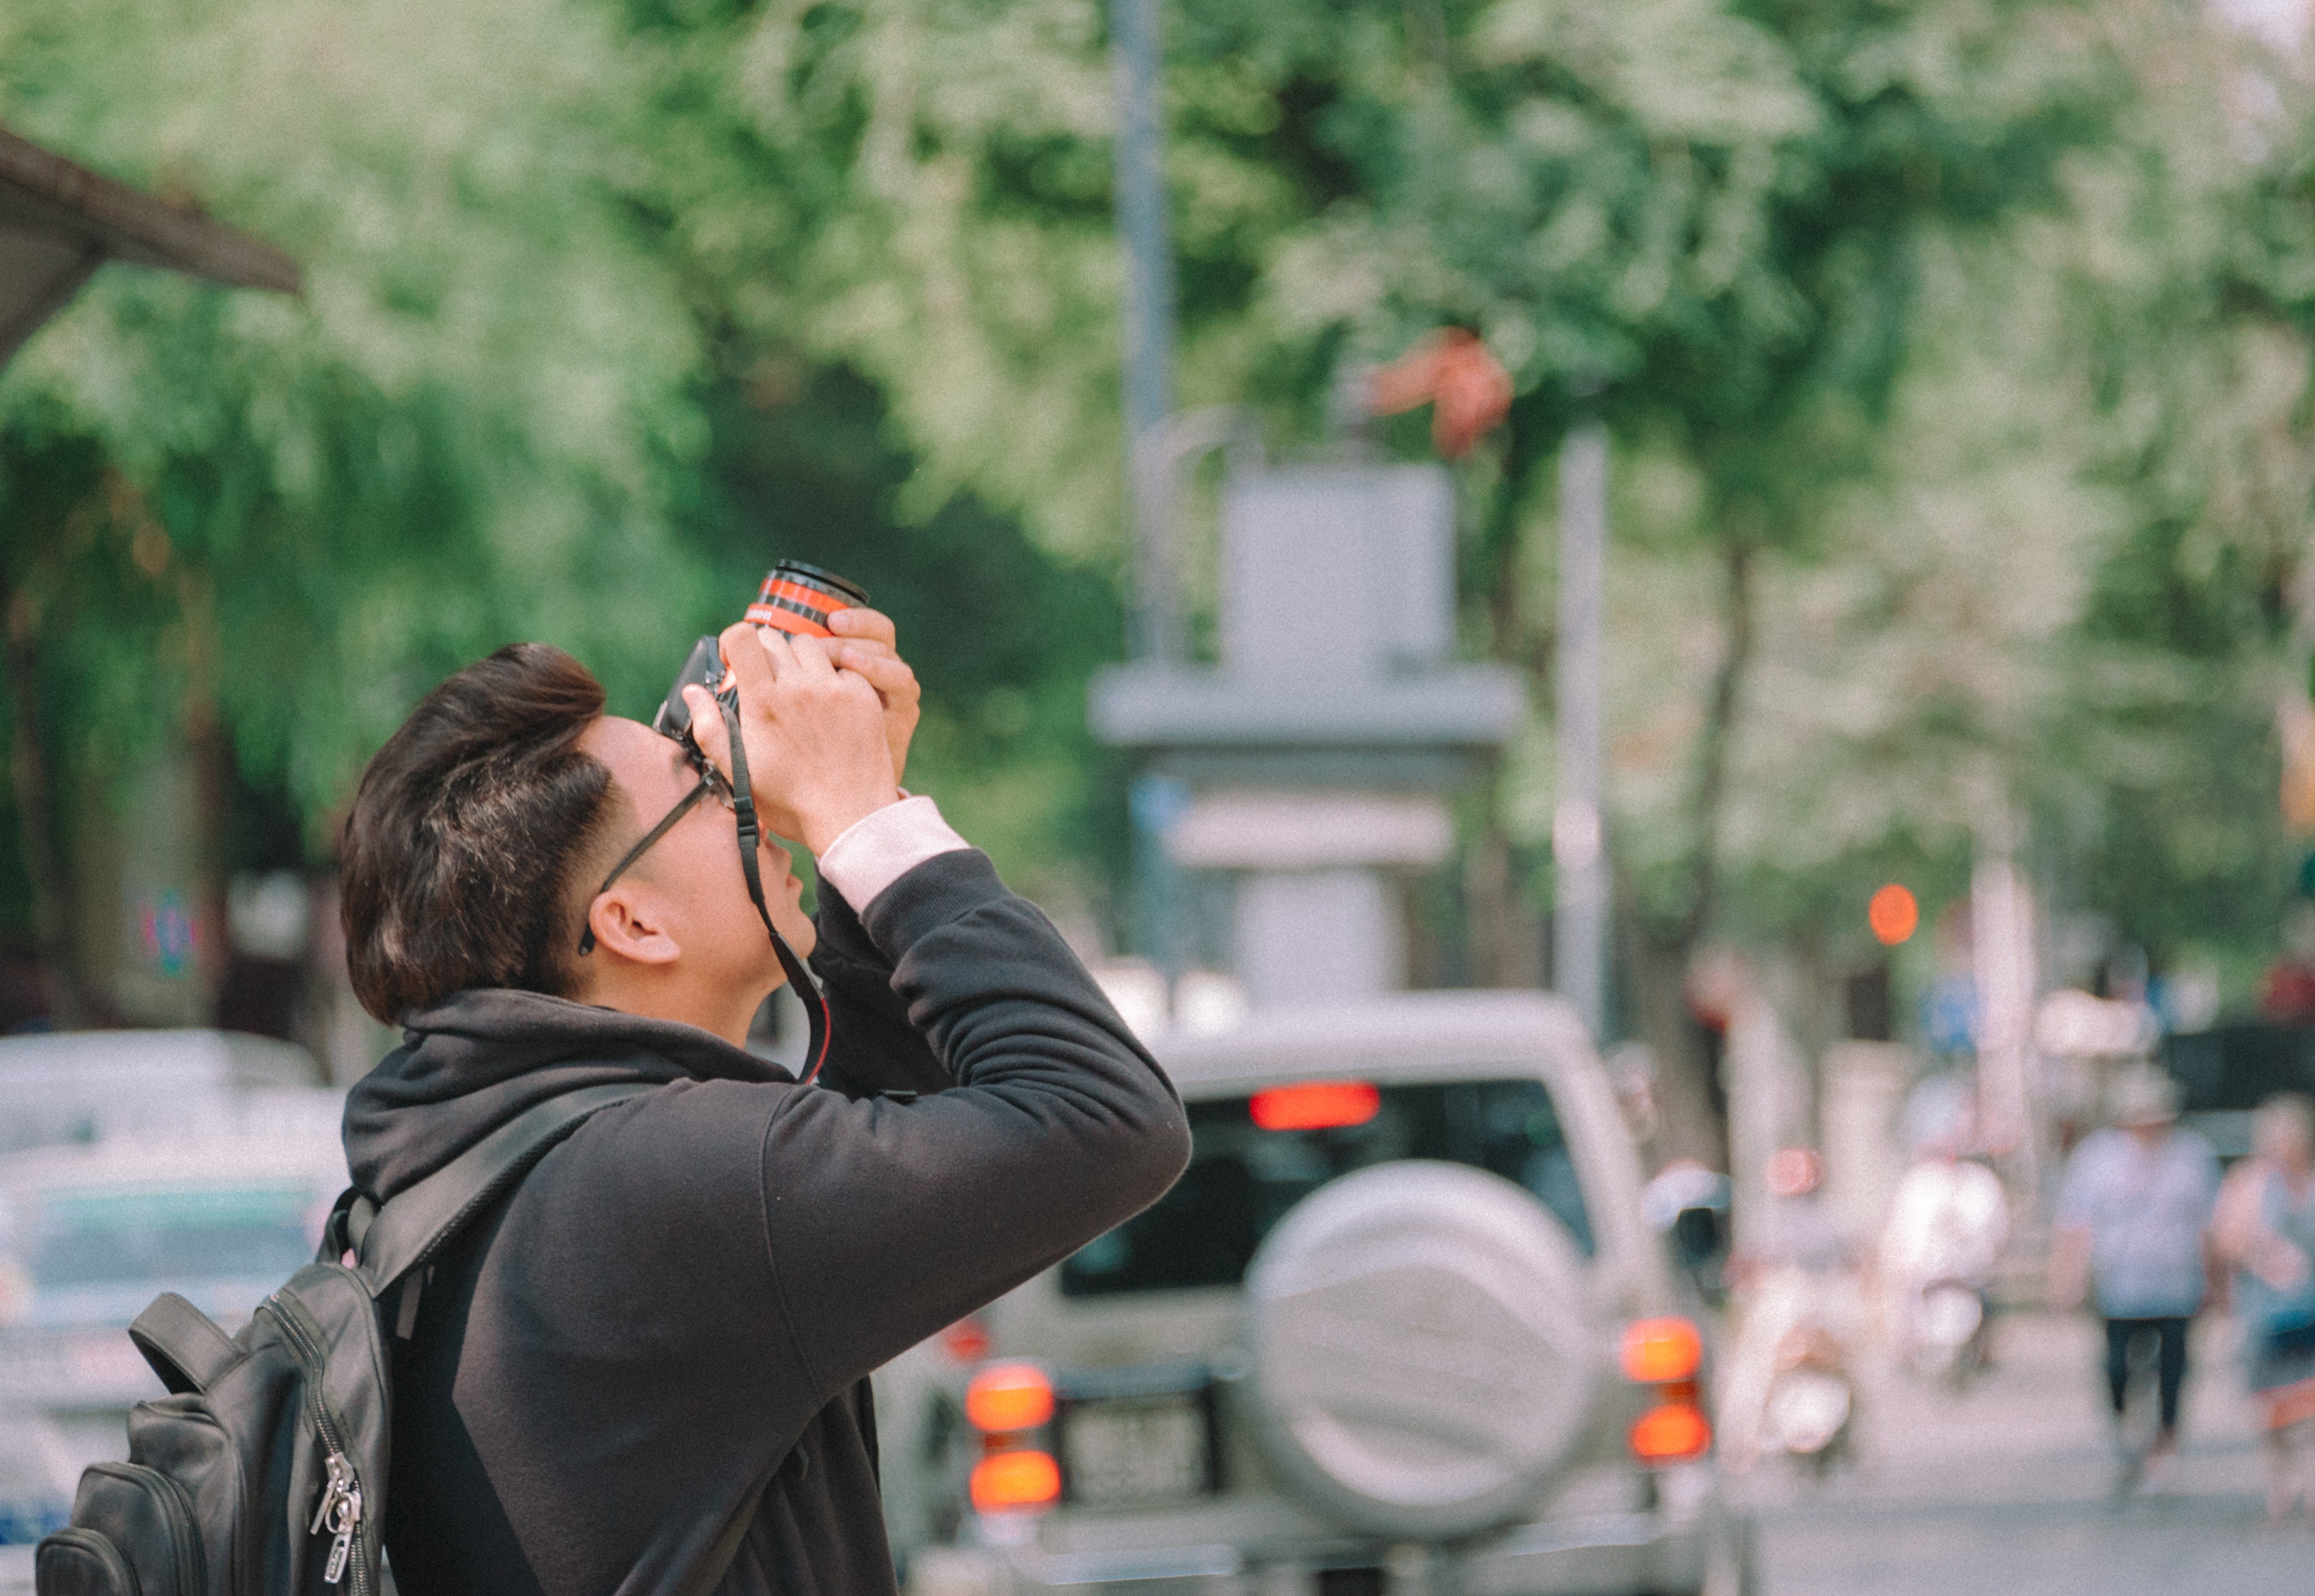 Man taking picture photo